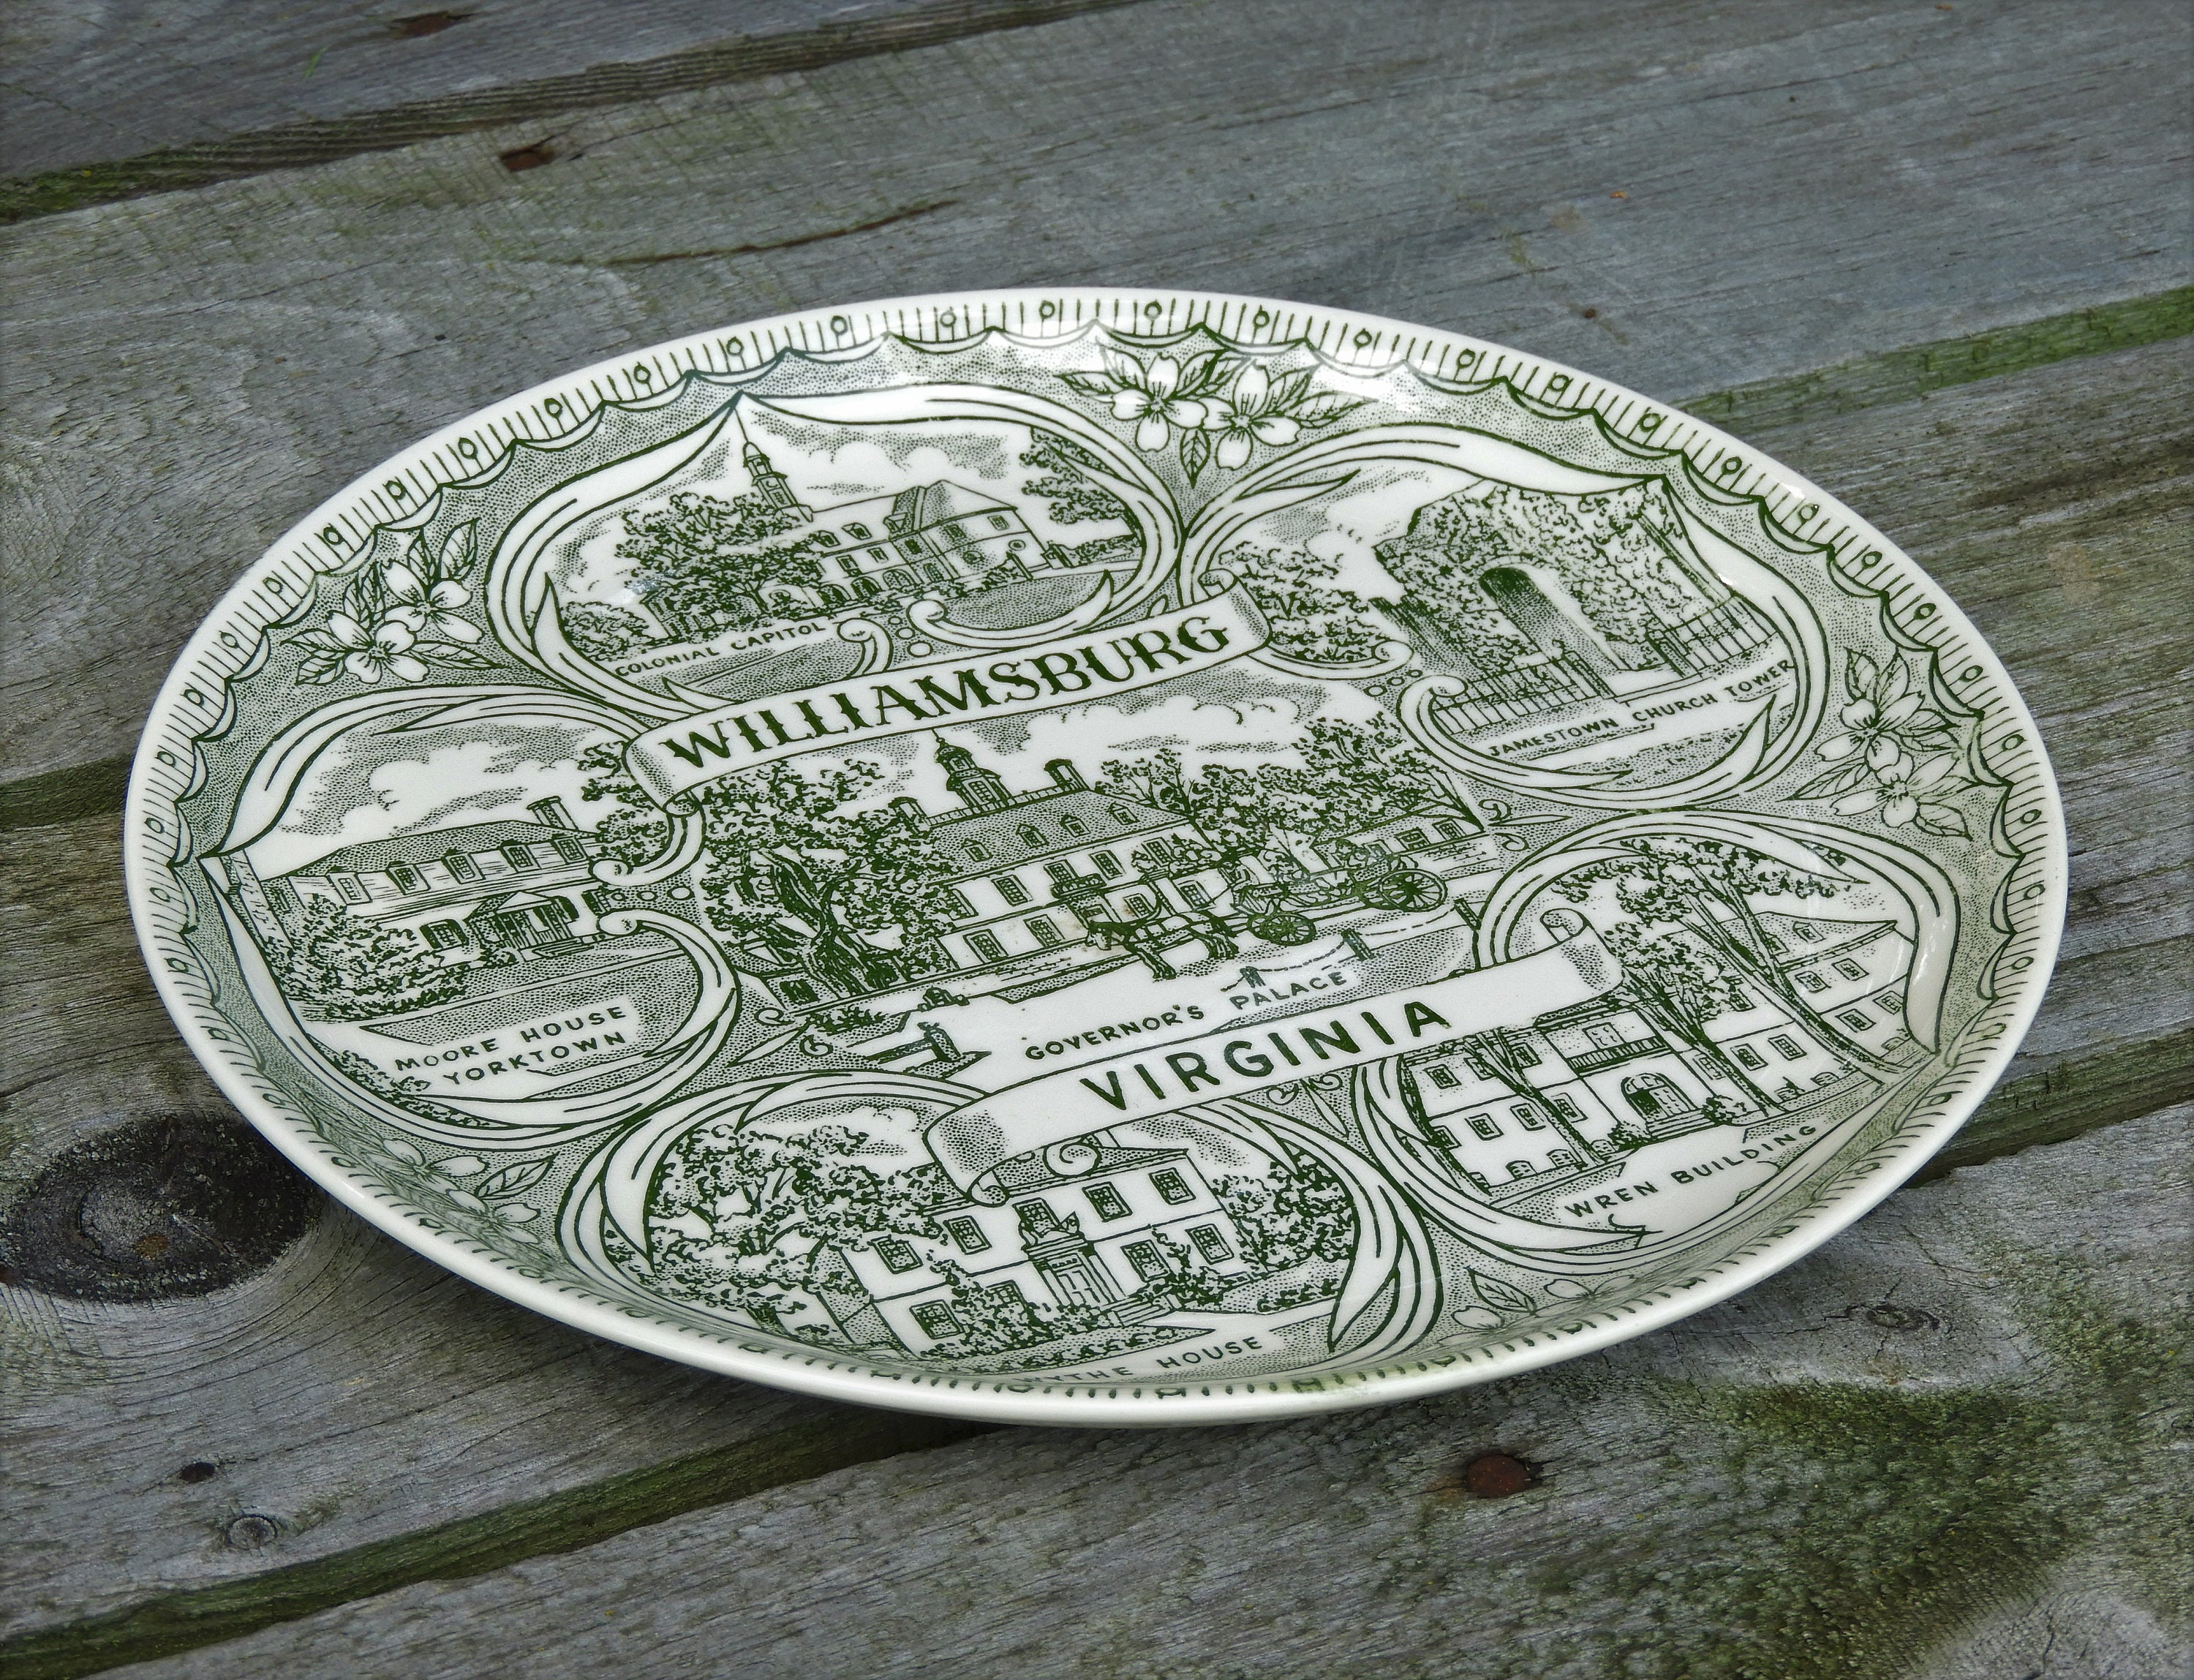 Williamsburg Commemorative Plate Virginia Pink and White Famous Sights to see FREE Plate Hanger Upon Request \u2013 just ask for it!